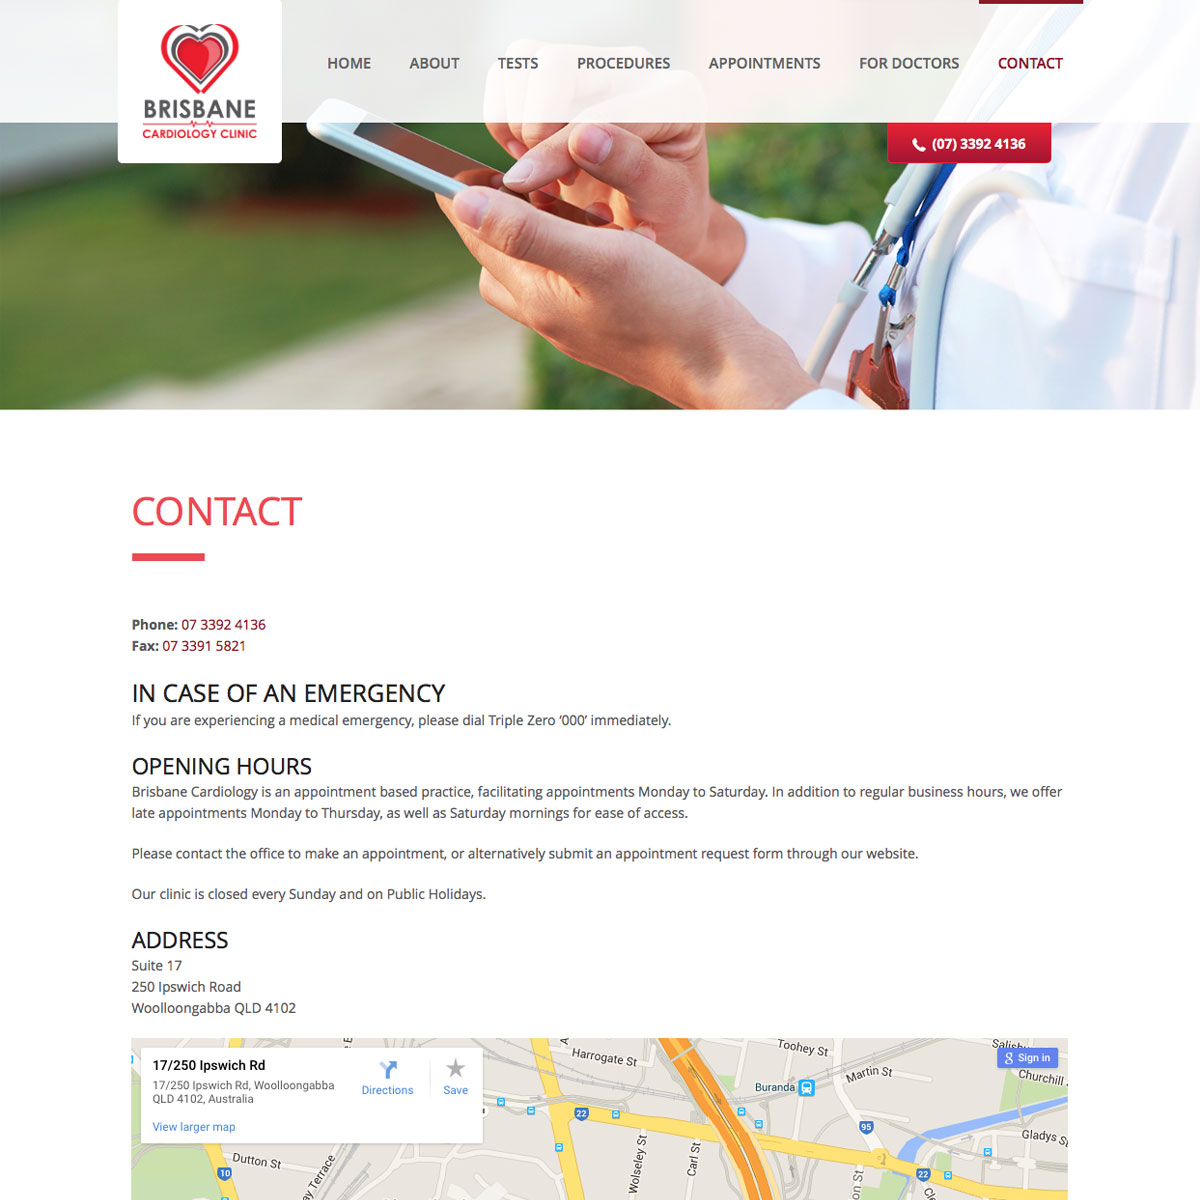 Brisbane Cardiology Clinic Contact